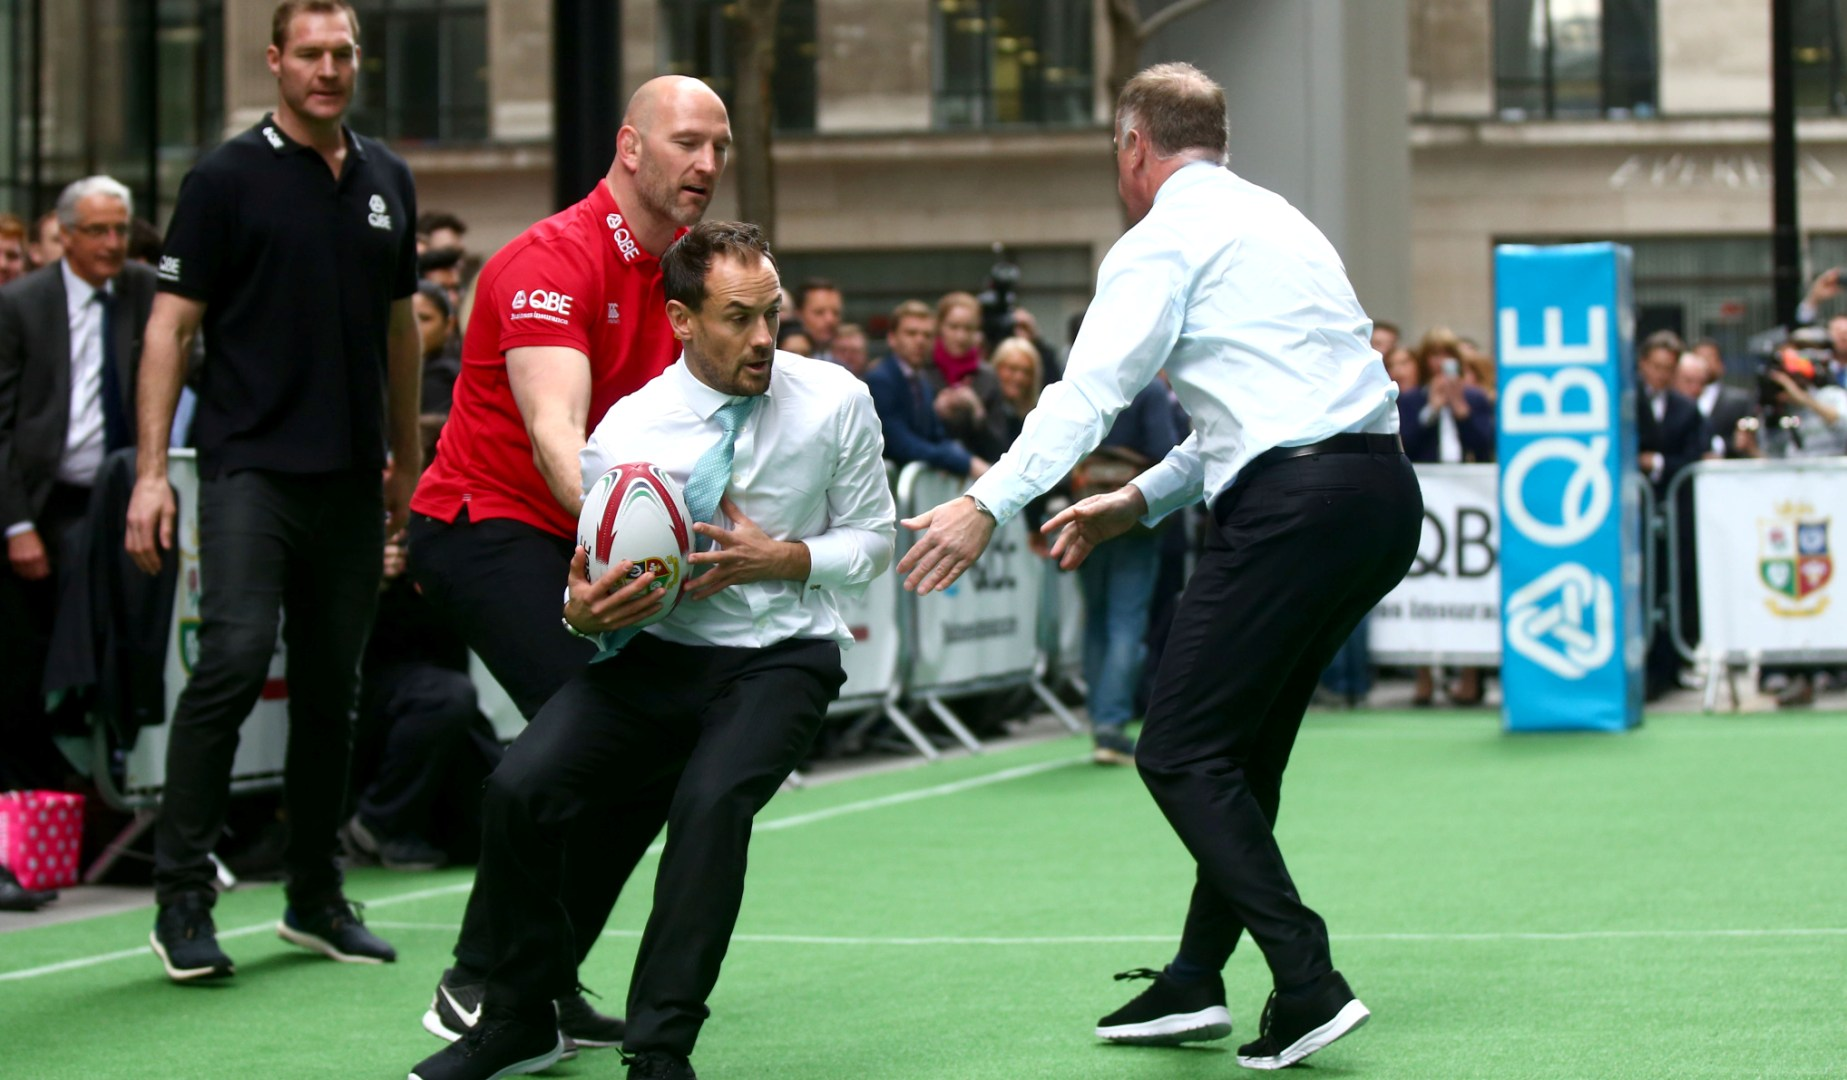 QBE bring touch rugby to the heart of London